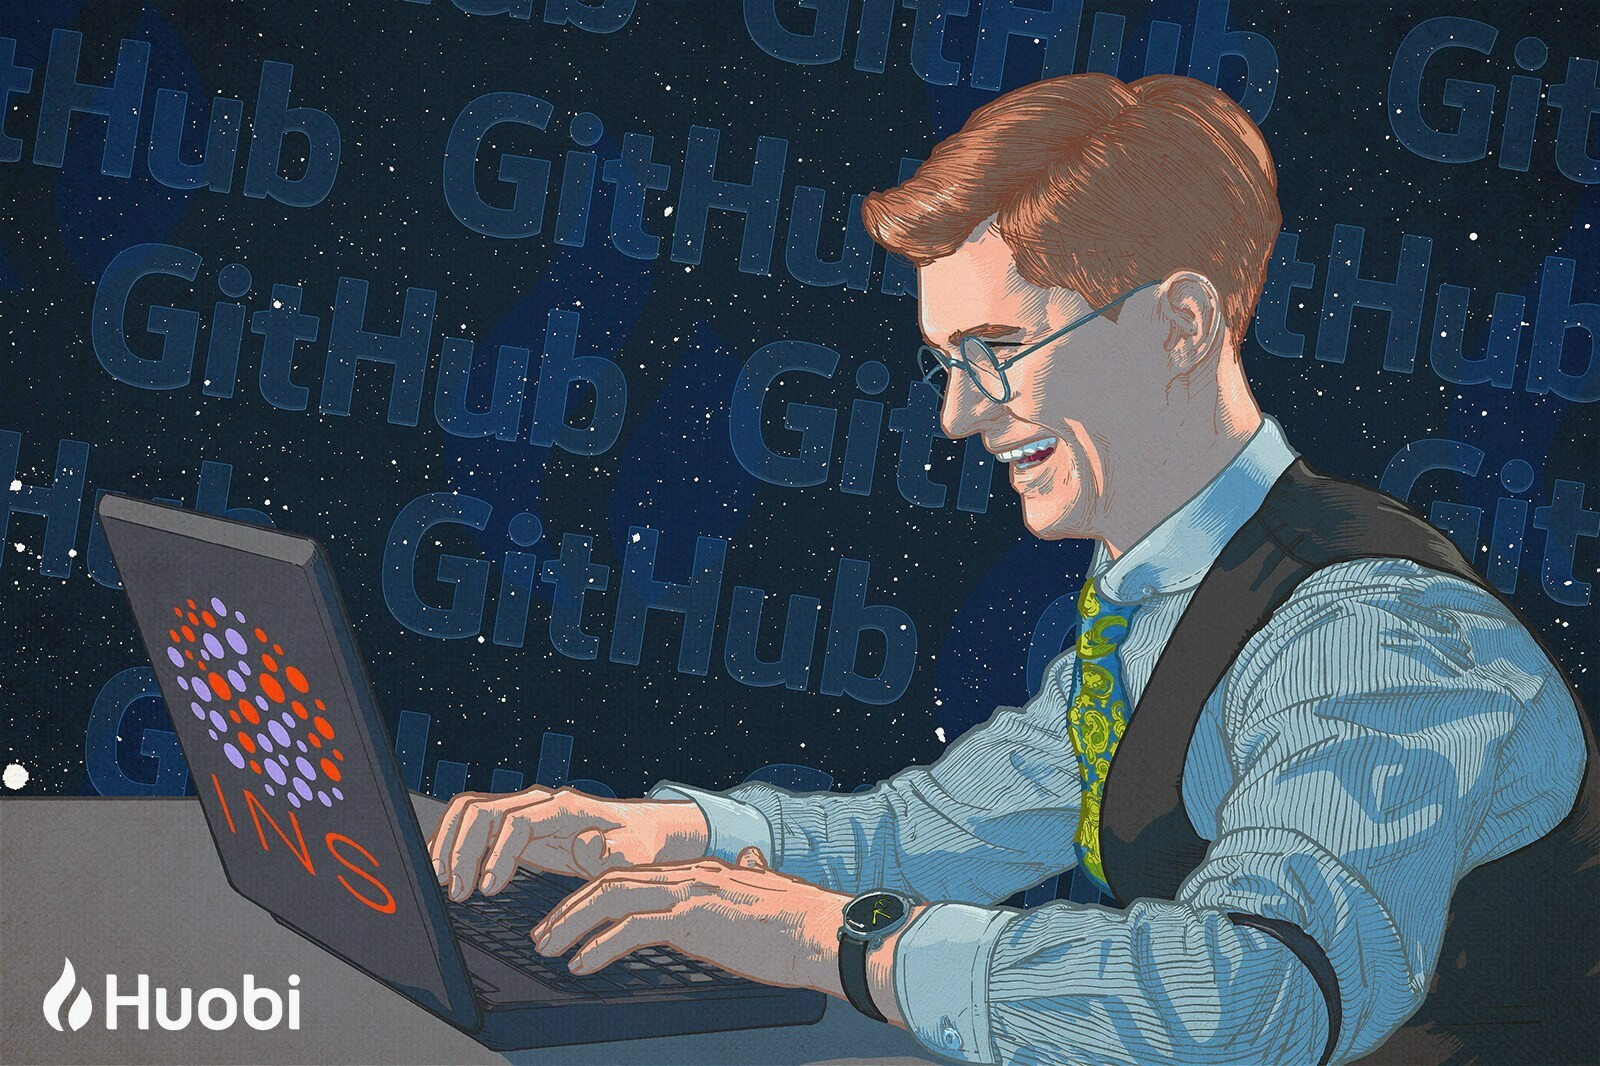 Andy veilski huobi weekly report vol 28 ins was the most active project on github this week